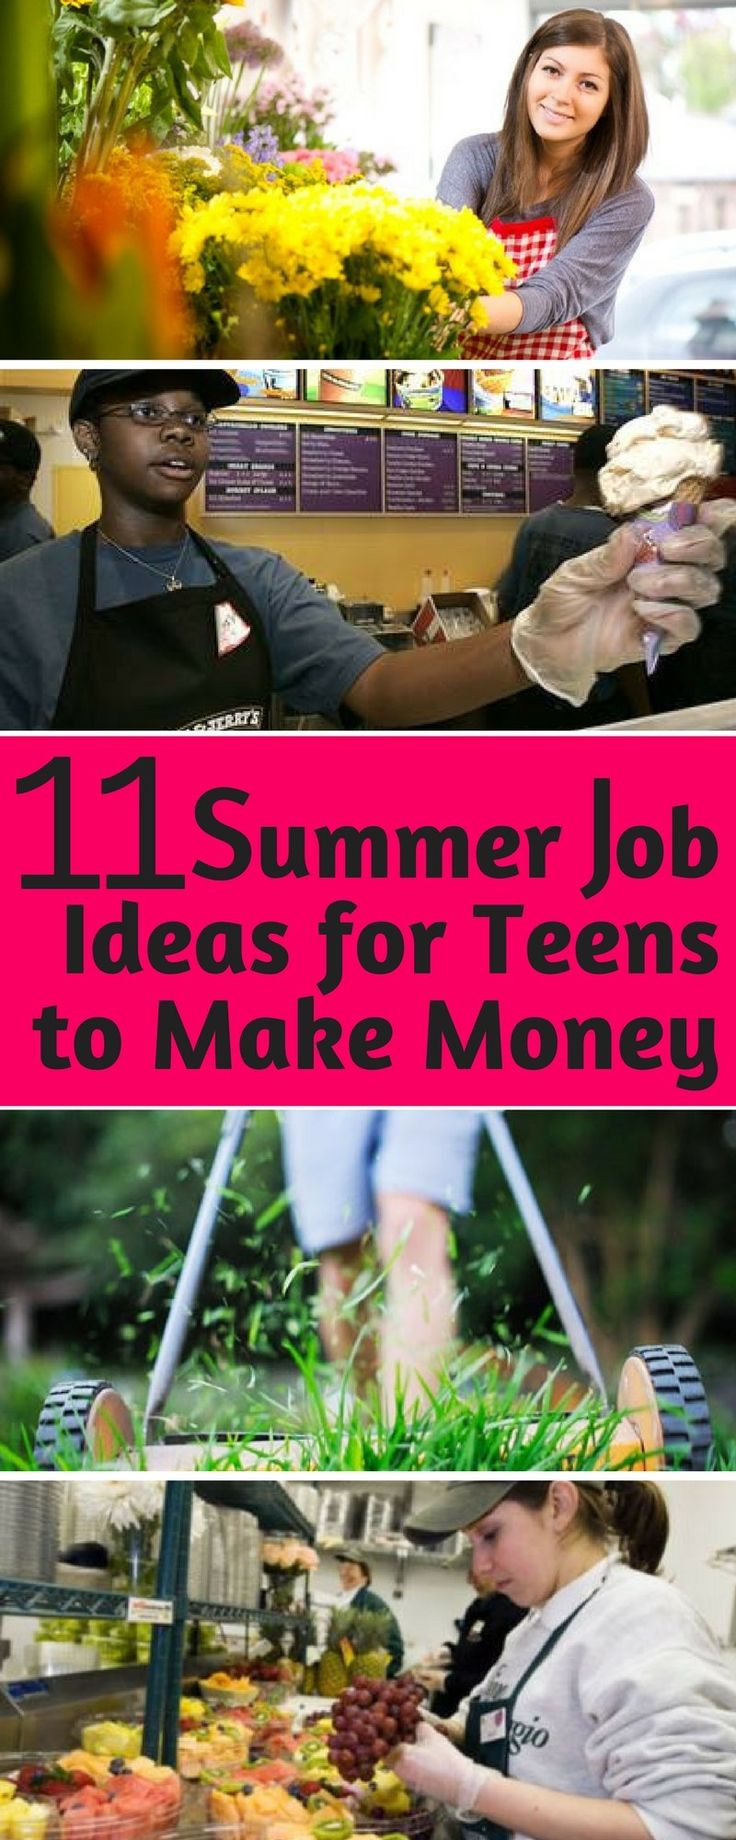 Eleven Summer Job Ideas for Teens to Make Money. Summer is the perfect time for teens to use their amazing skills to make money. If you are a teenager, consider figuring out ways to use your time off this summer to find a job or start a small business, to earn some money.